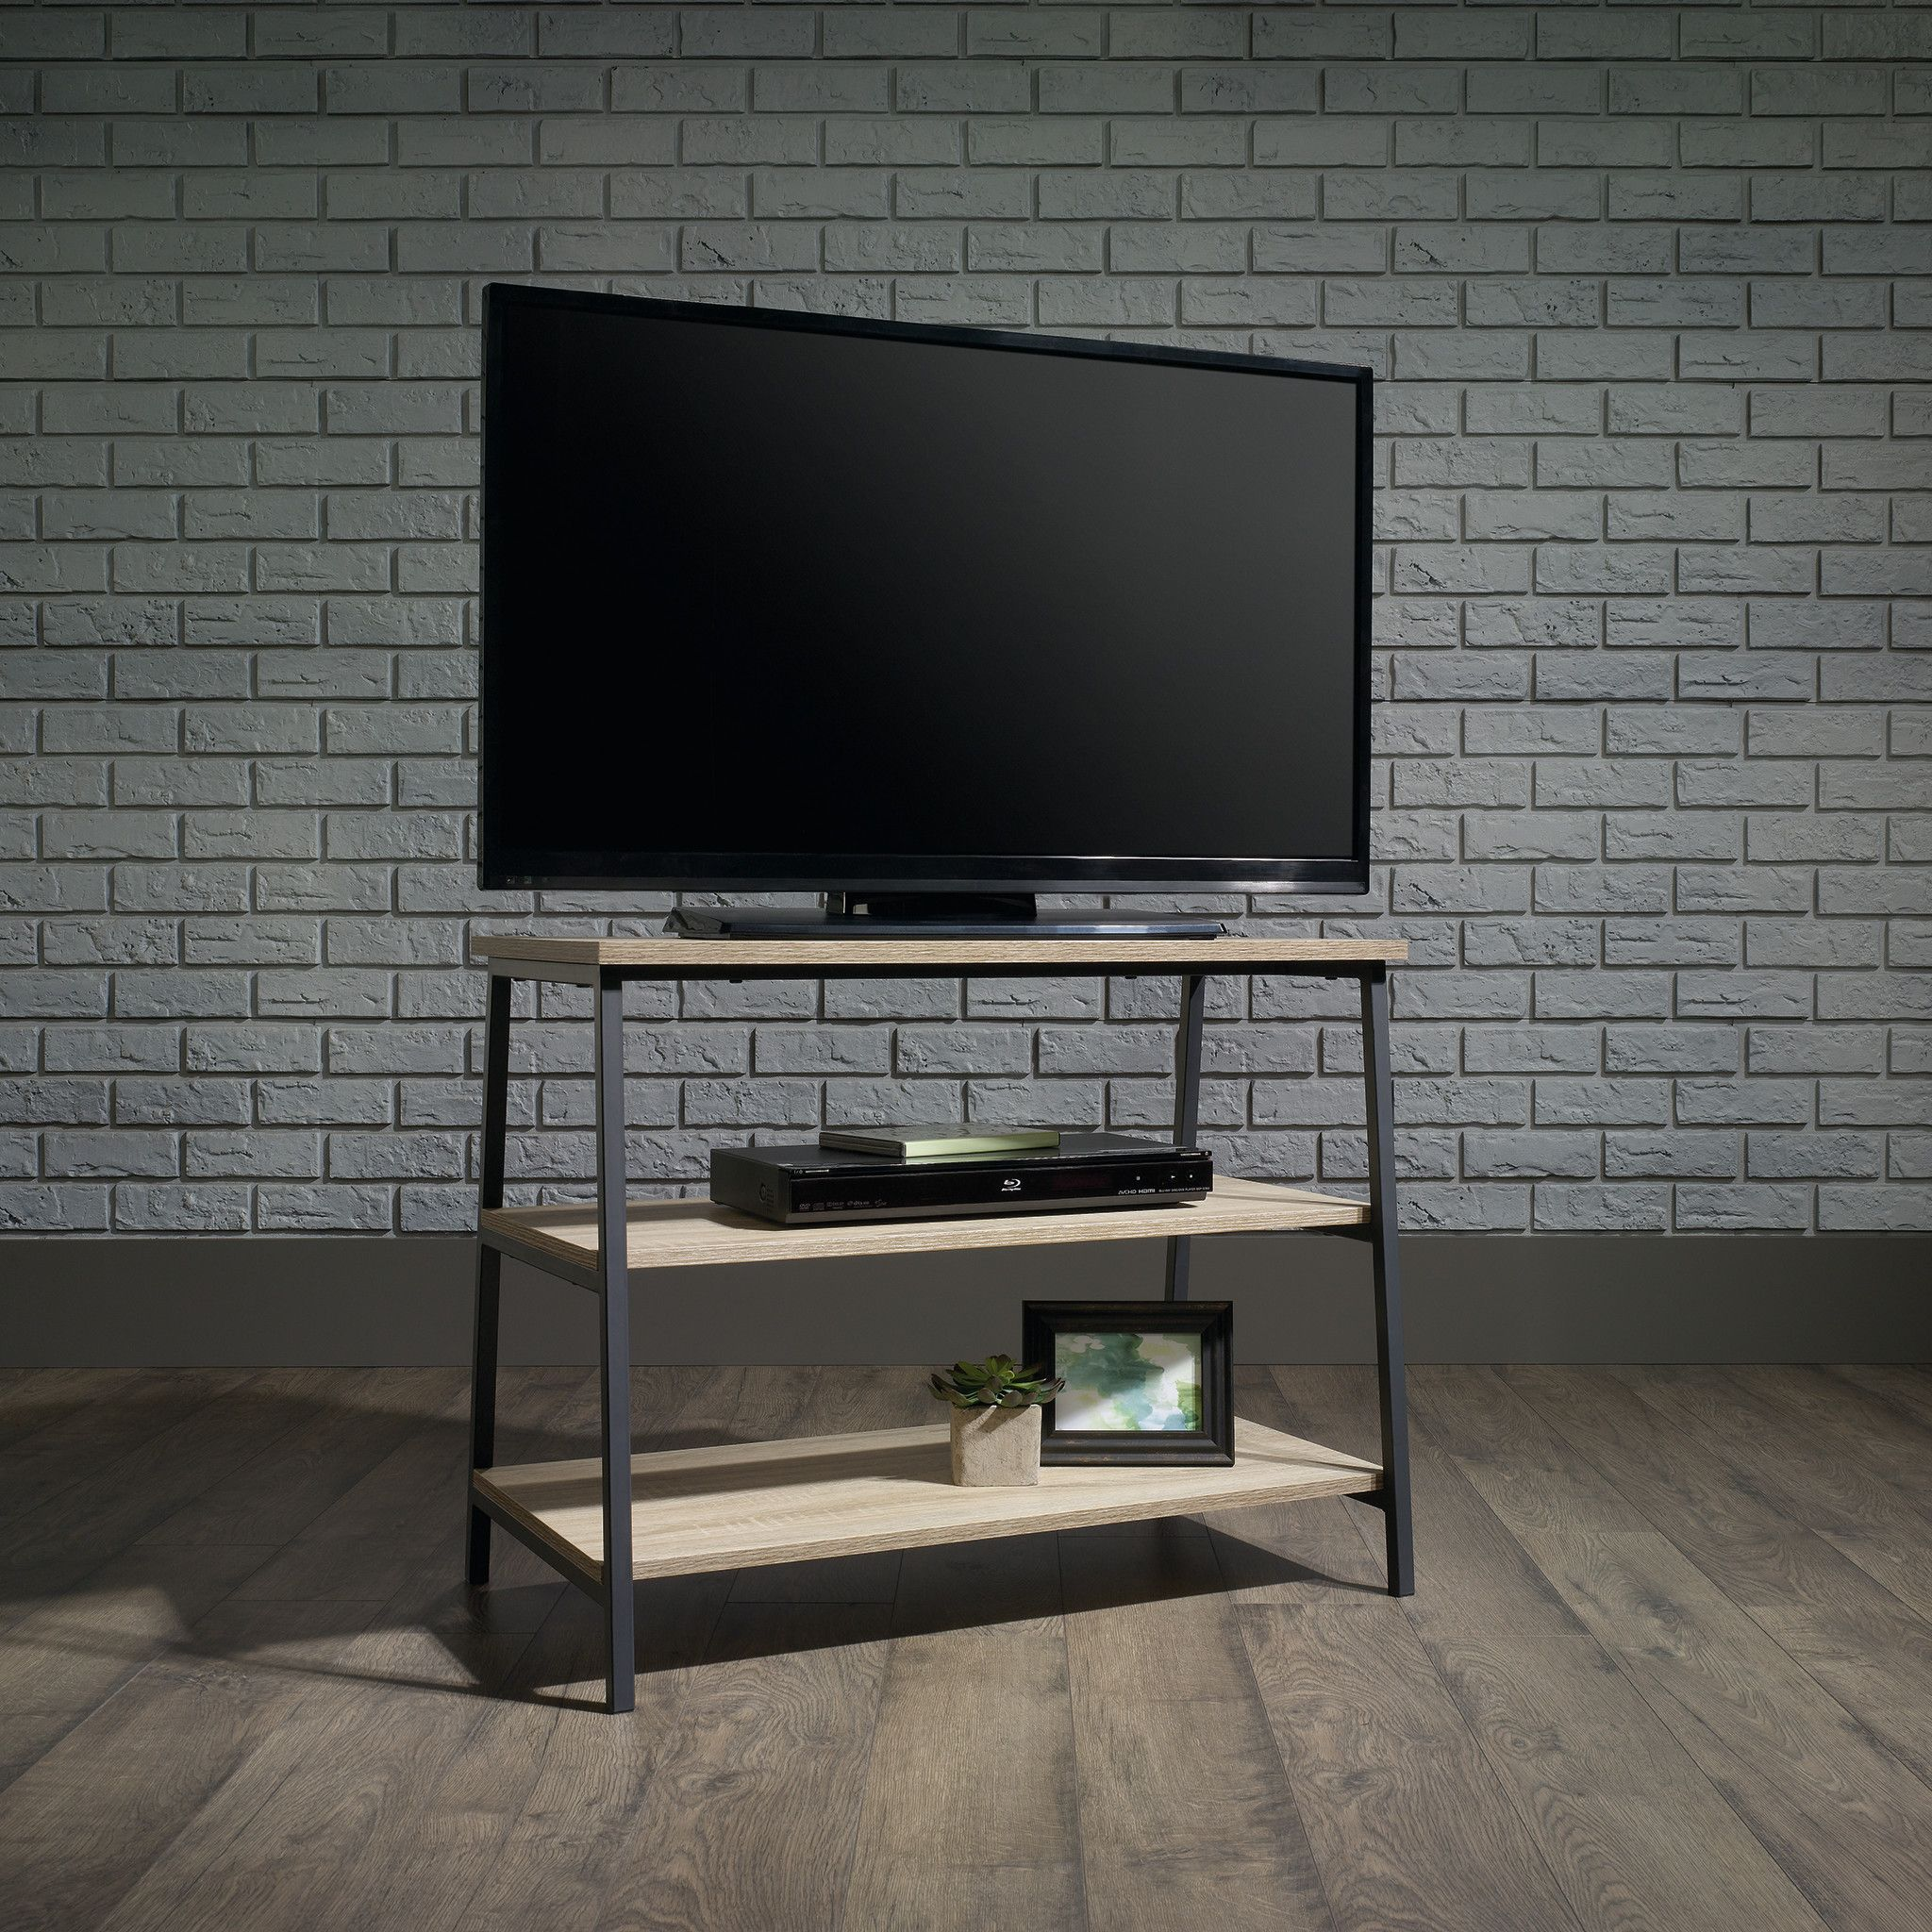 Laurel foundry modern farmhouse ermont tv stand decor pinterest